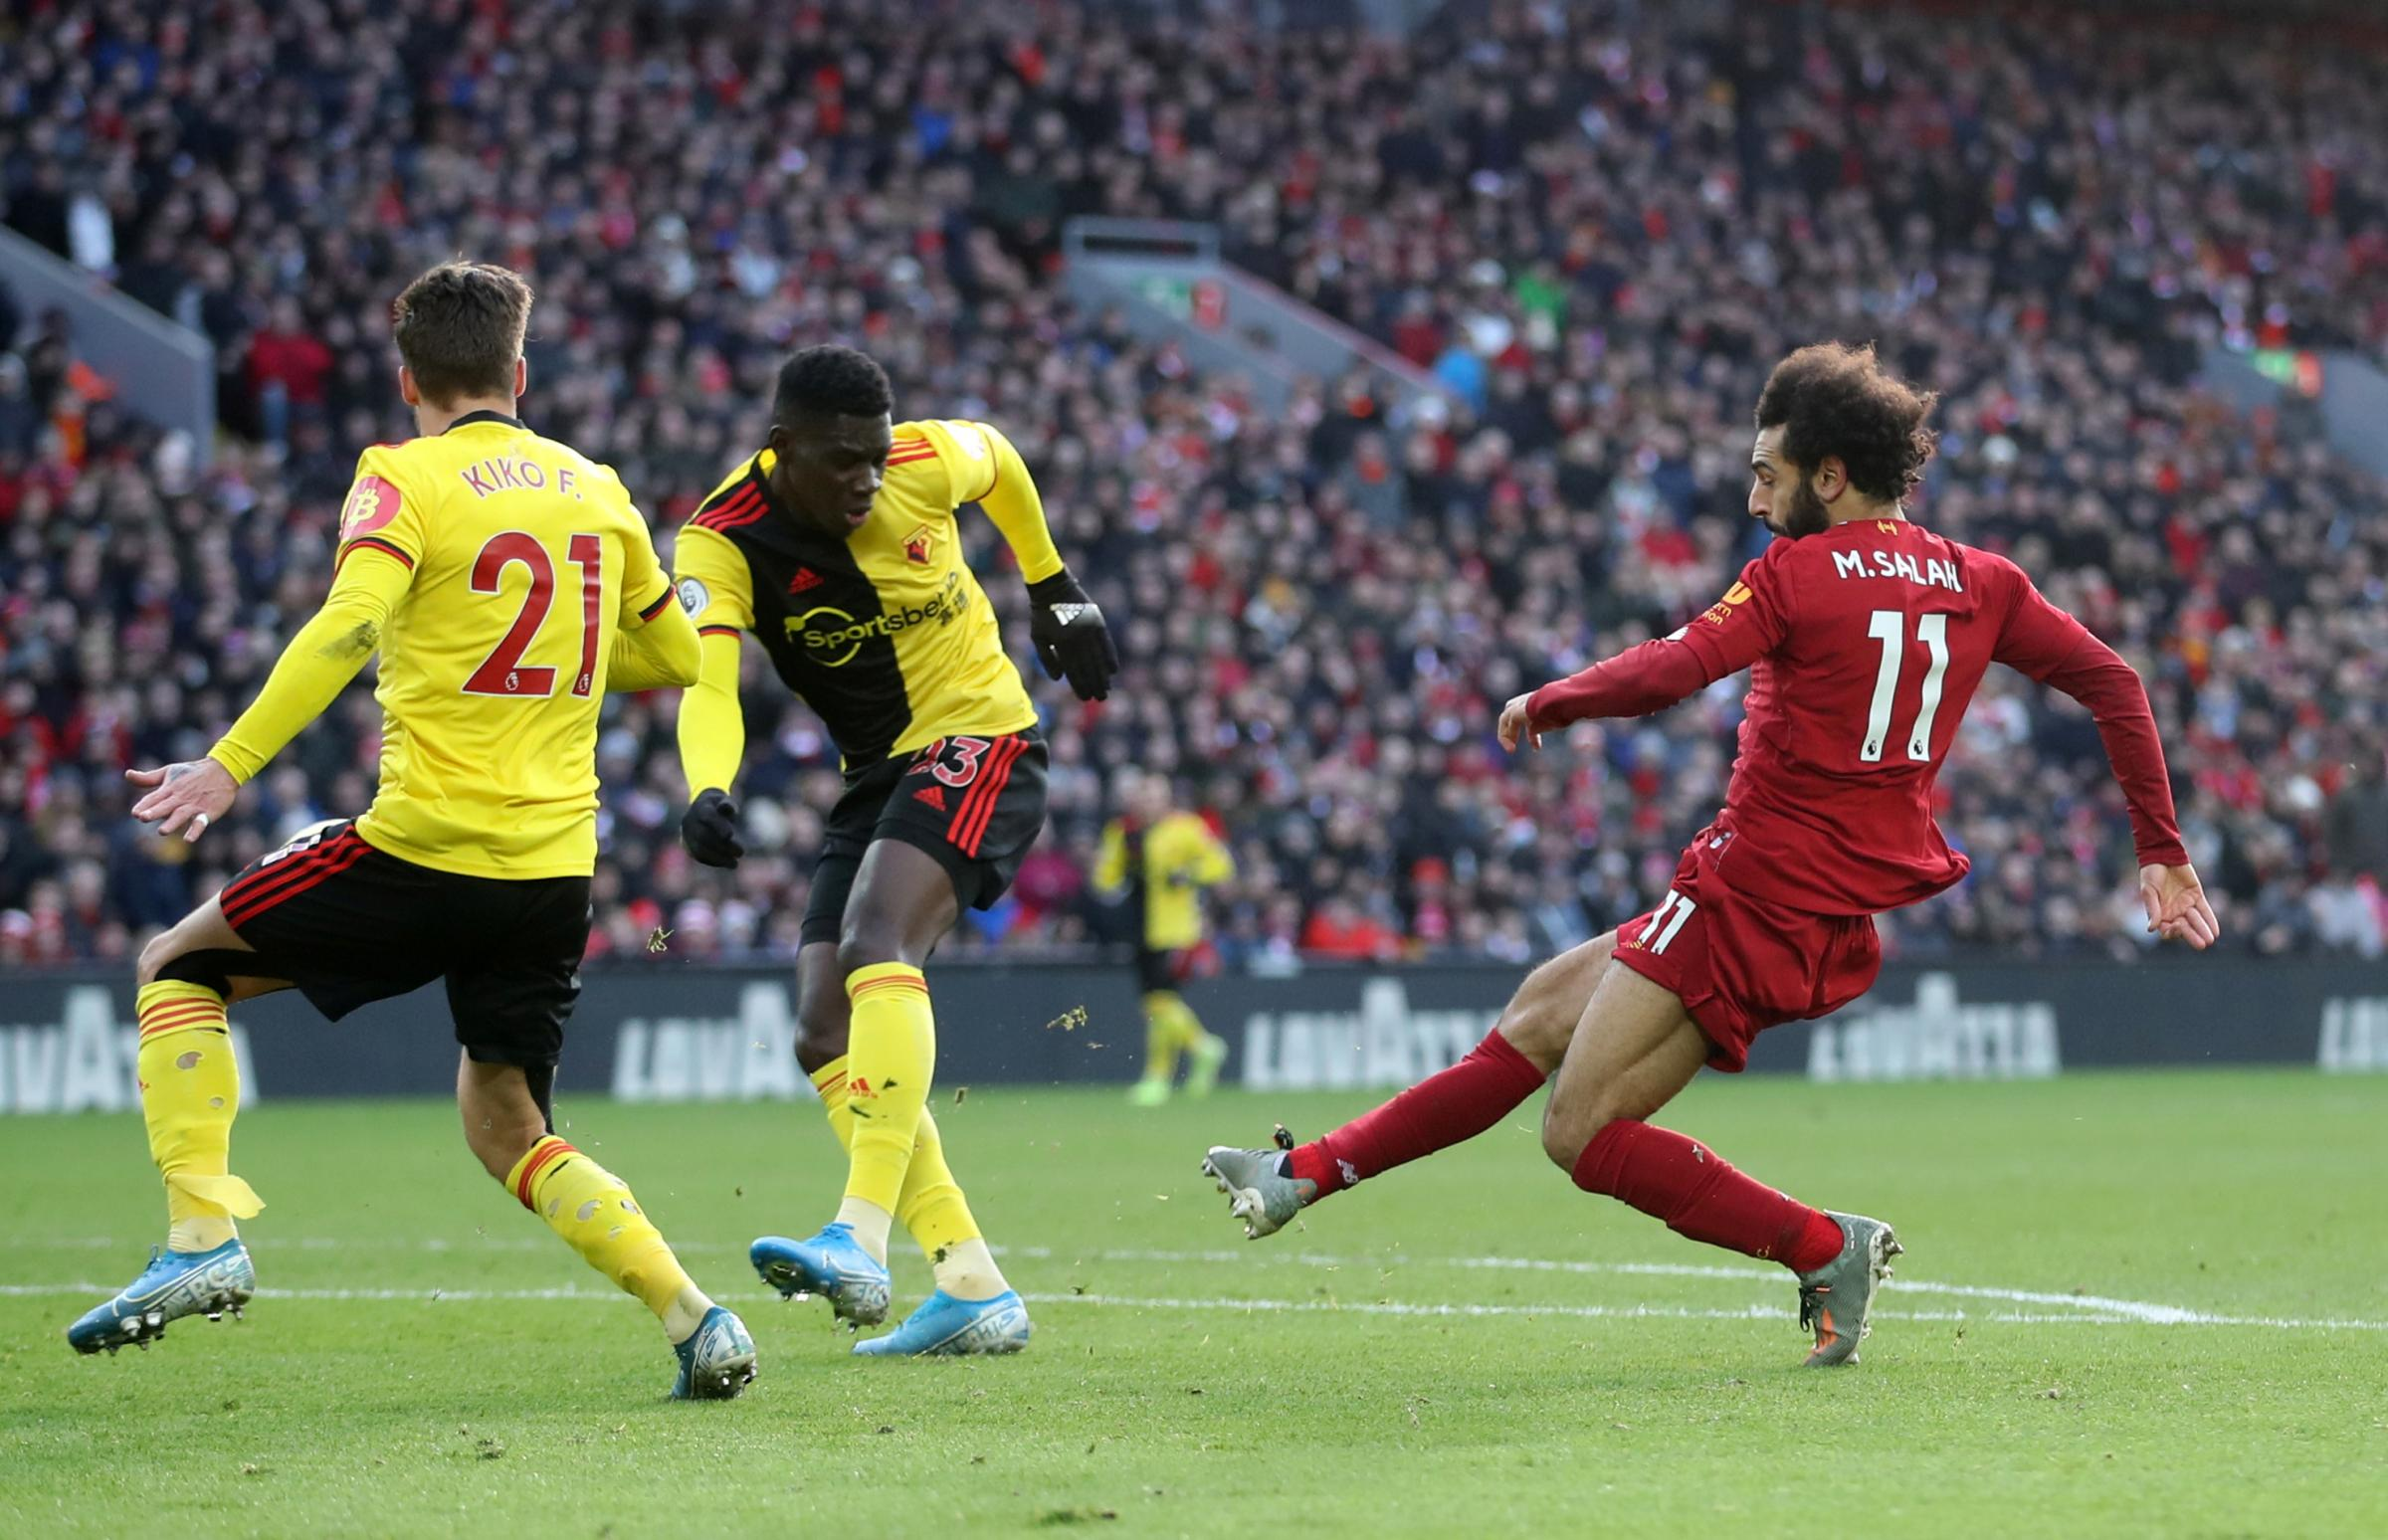 Watford beaten by Liverpool despite improvement in Nigel Pearson's first game